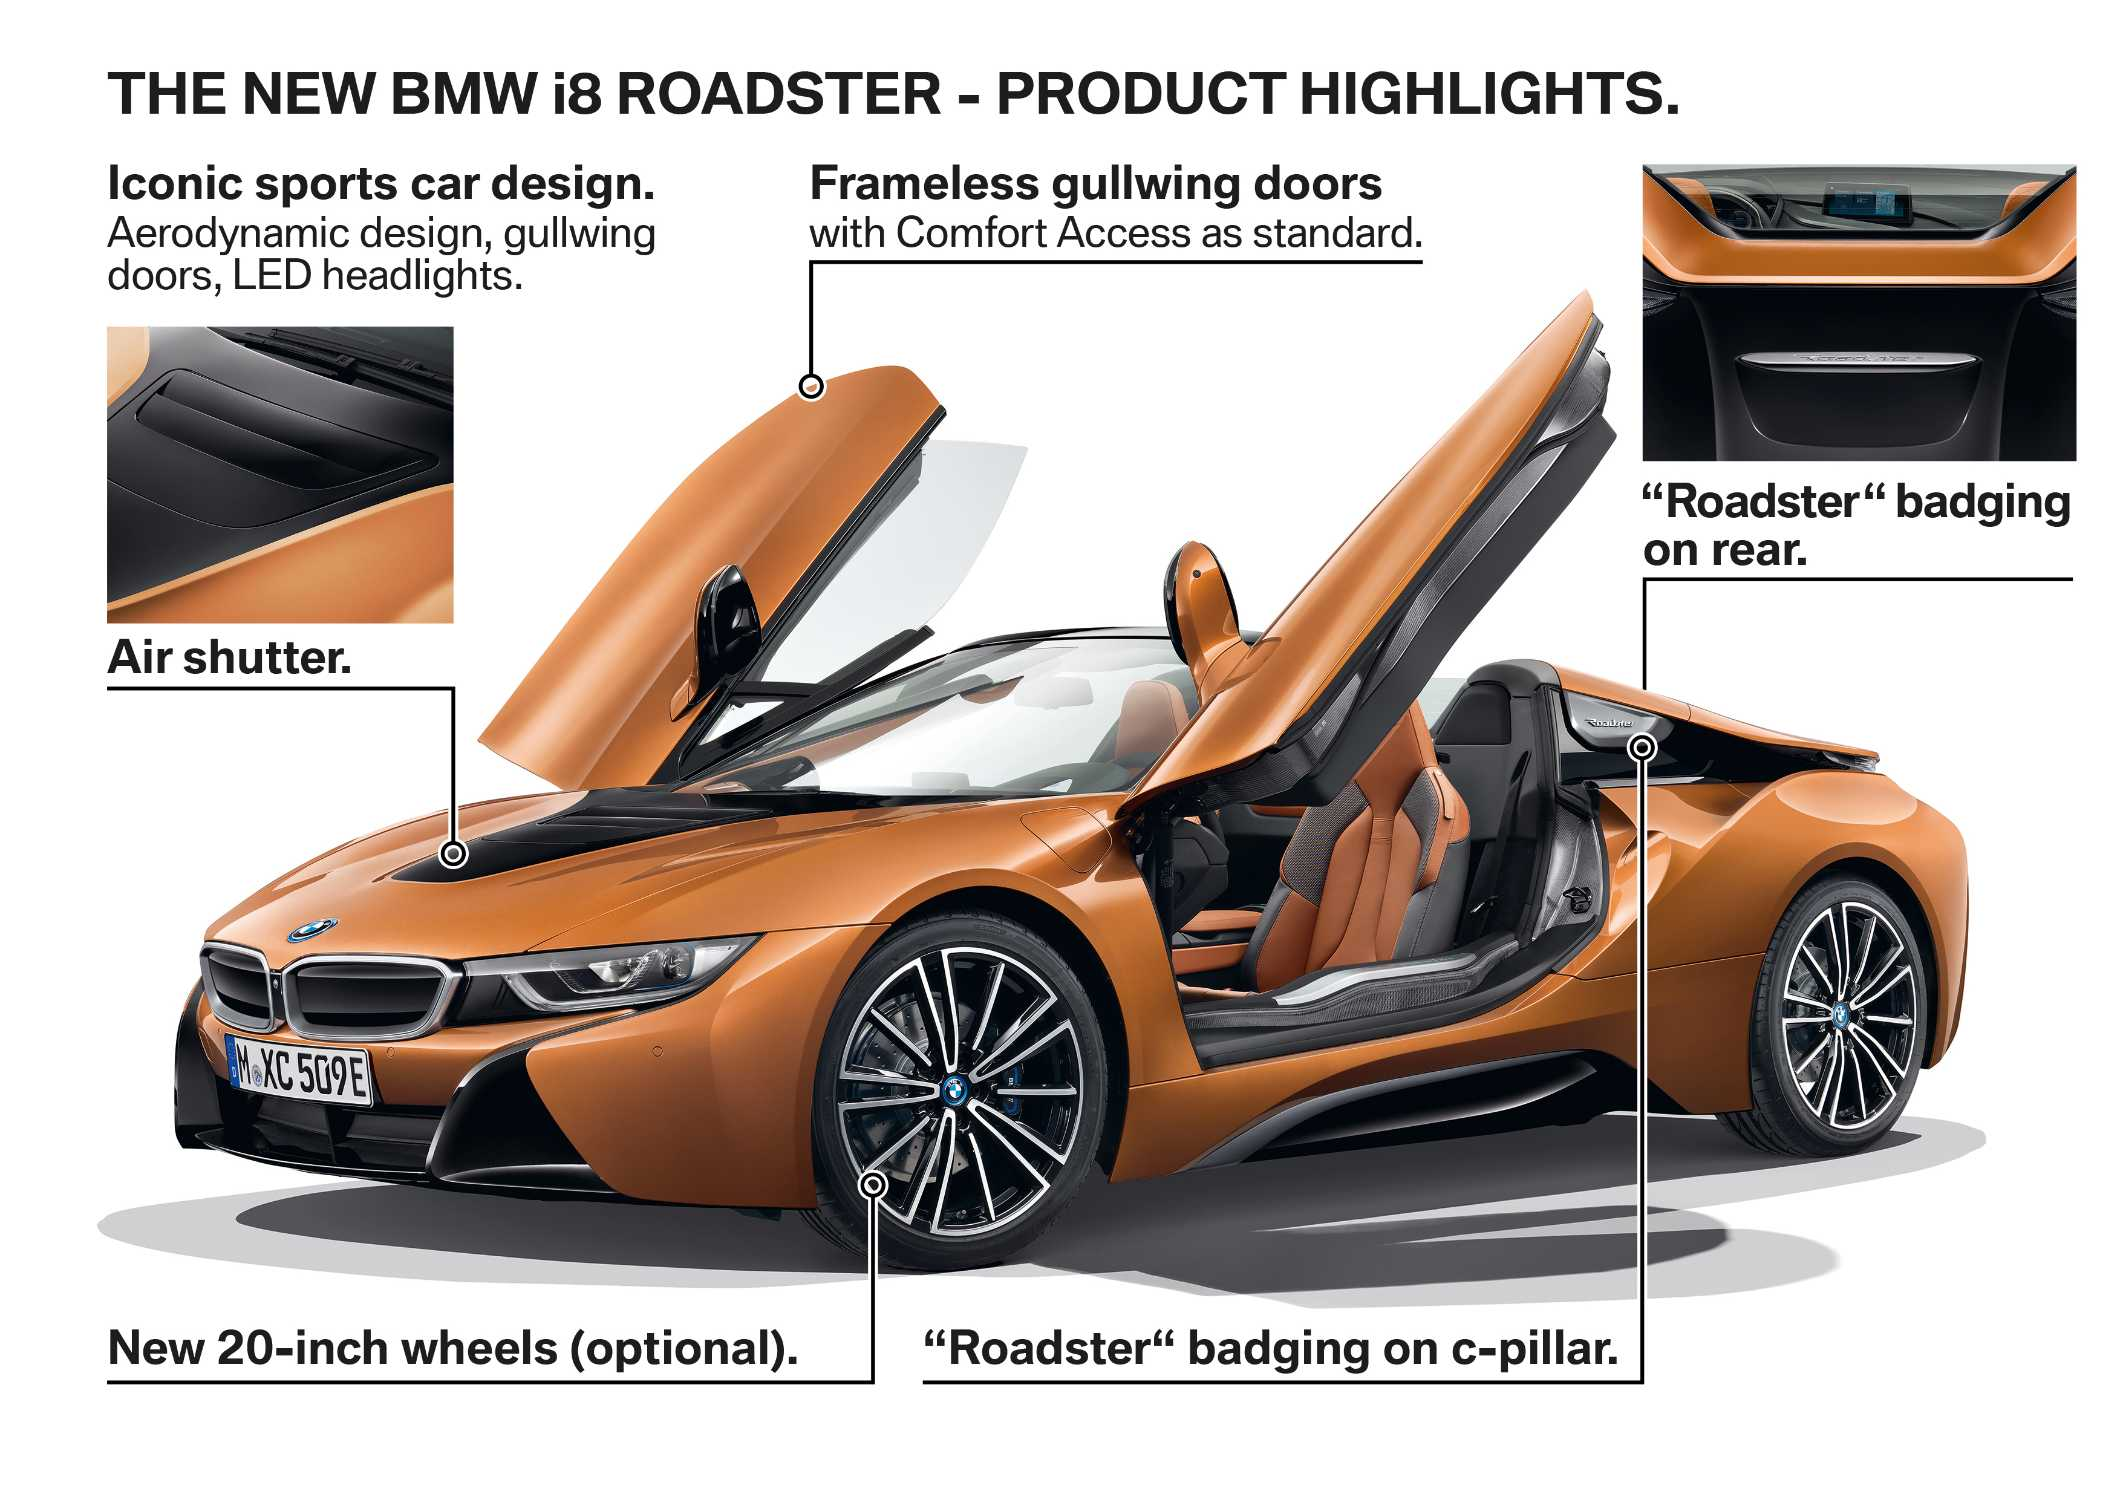 The new BMW i8 Roadster - Product Highlights. (11/2017)